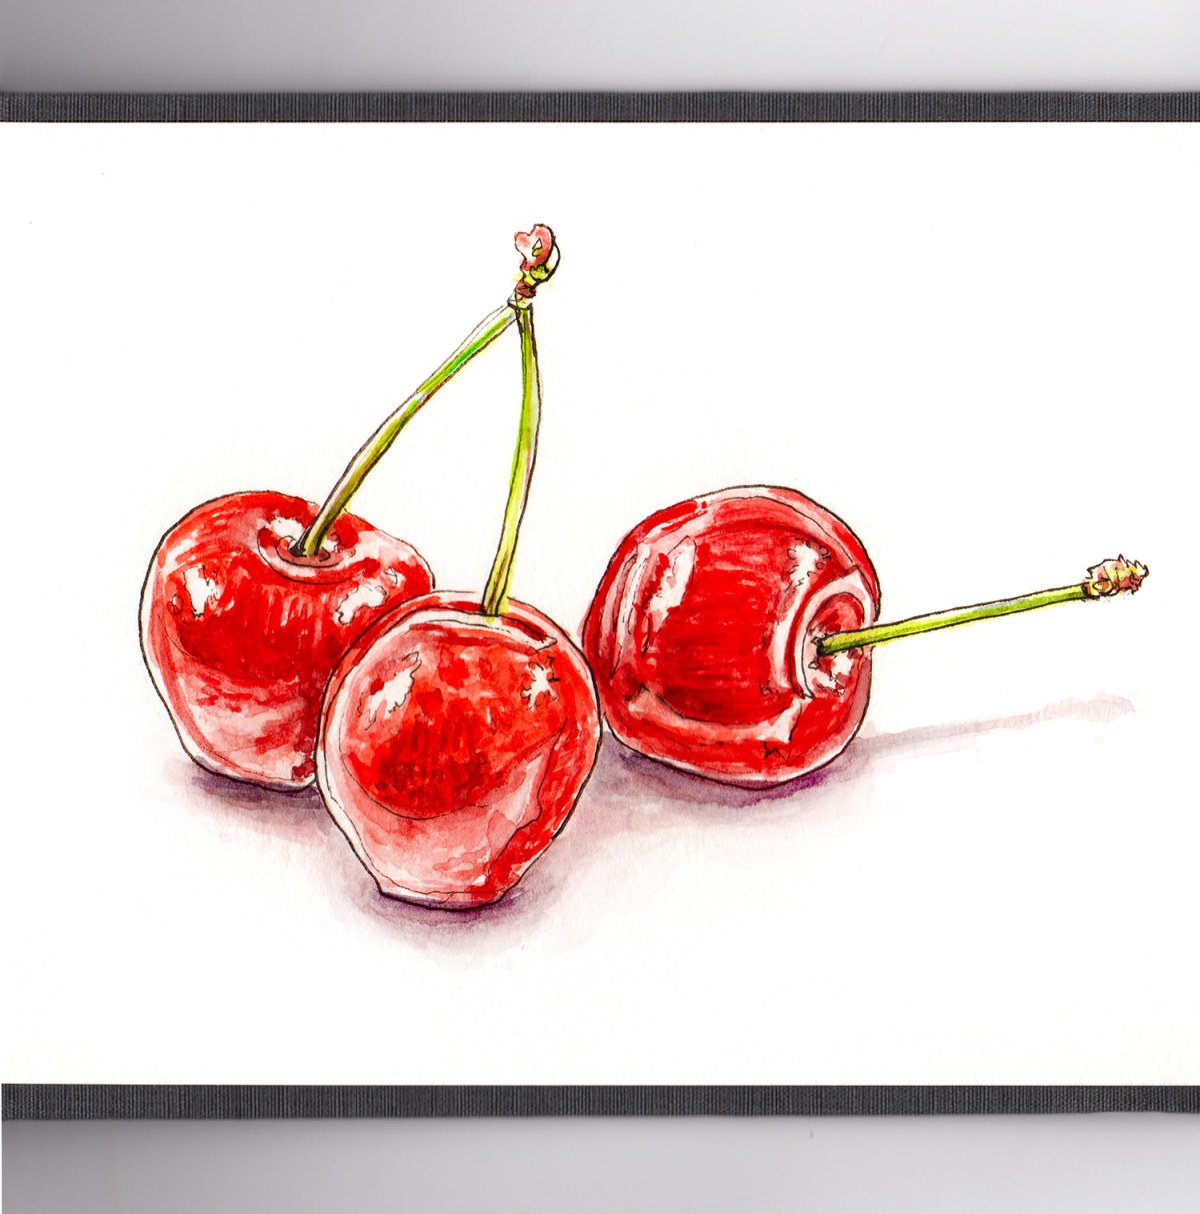 Day 1 - #WorldWatercolorGroup - Glossy Cherries on White Background Watercolor - #doodlewash